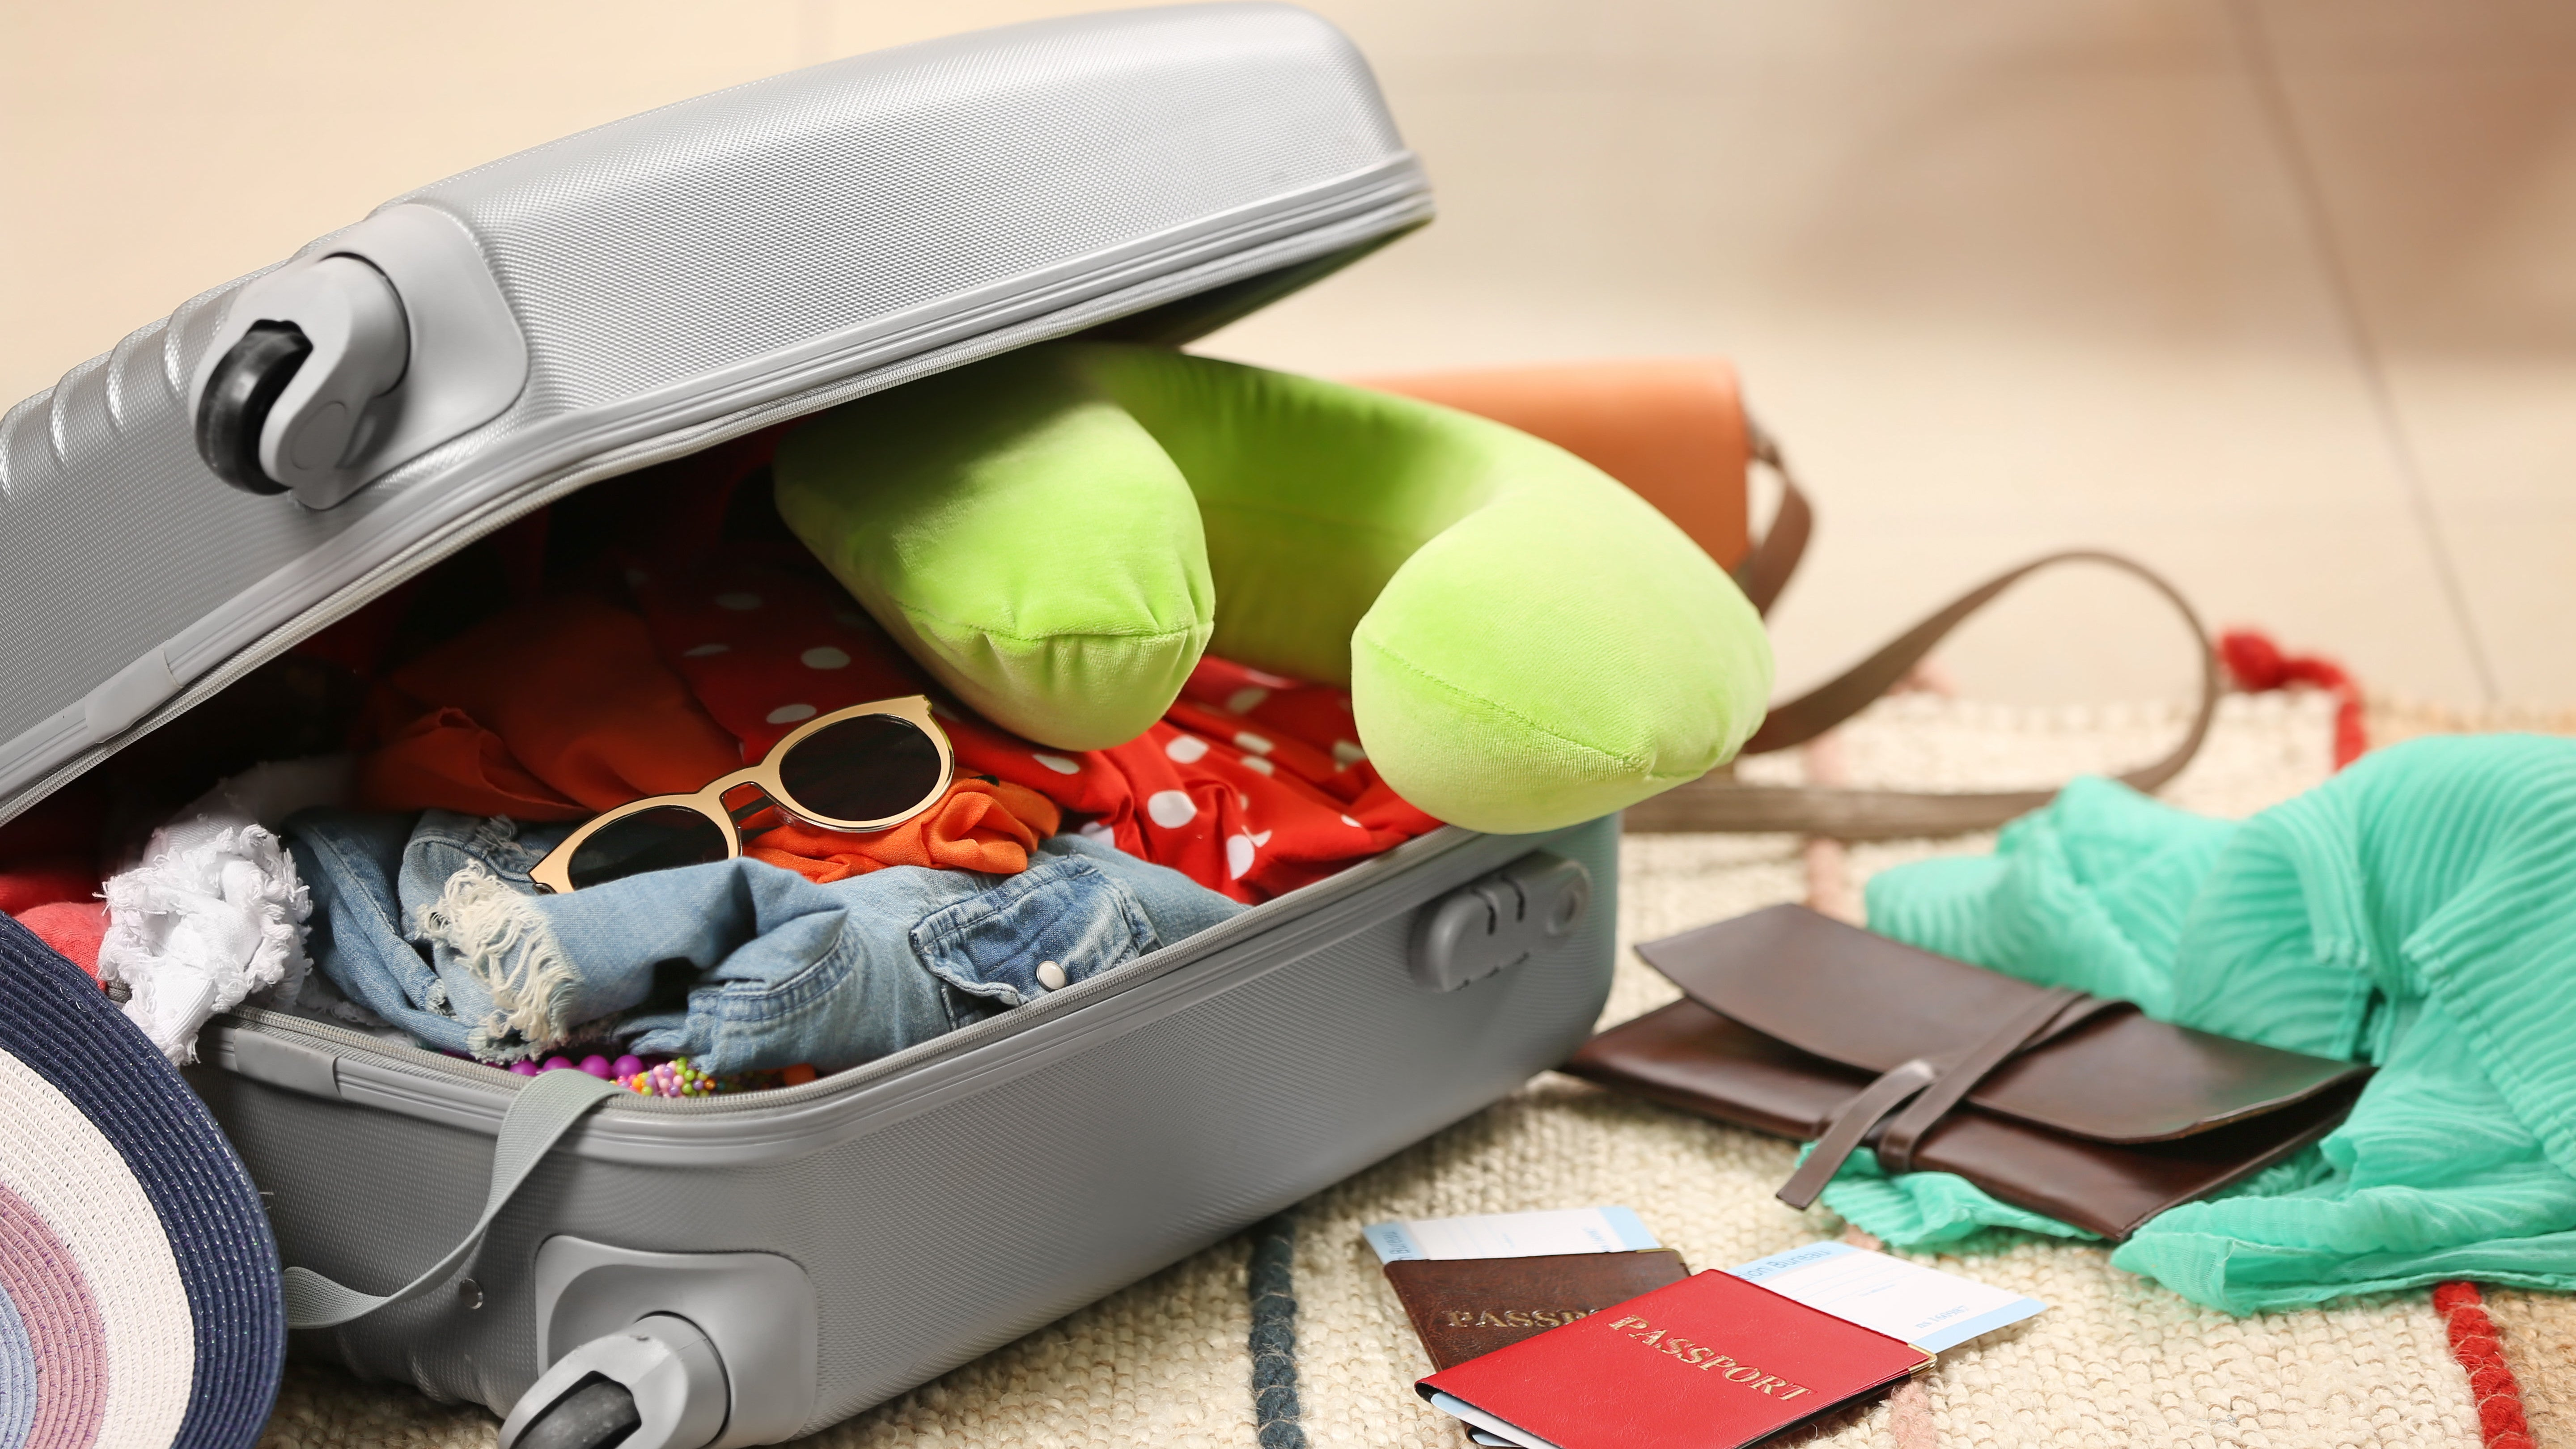 How To Use Your Travel Accessories At Home